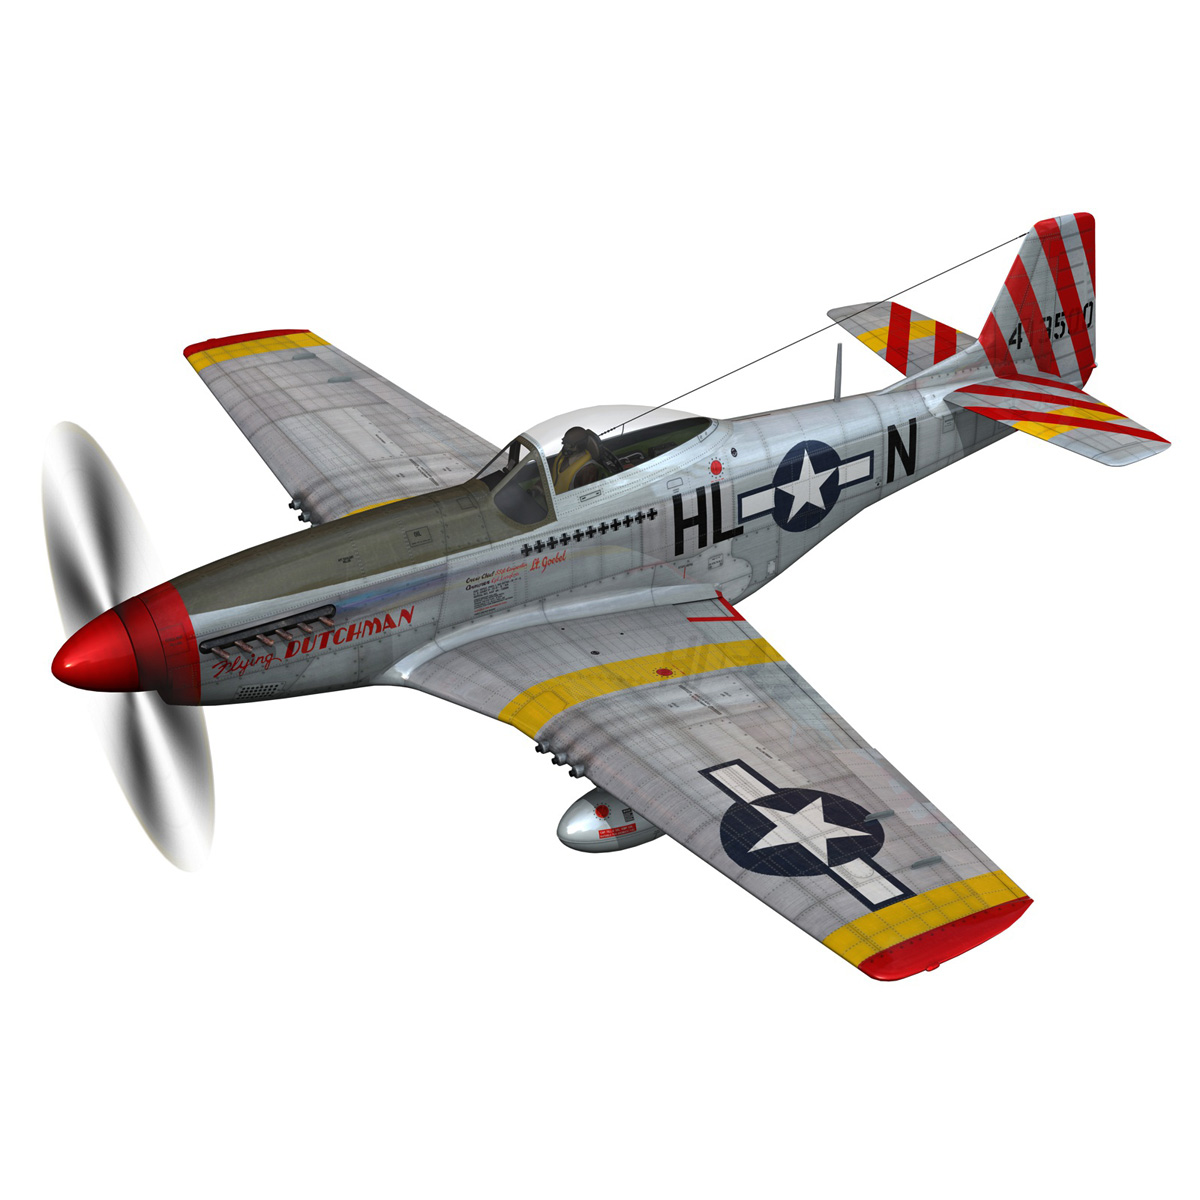 north american p-51d – flying dutchman 3d model fbx lwo lw lws obj c4d 267117